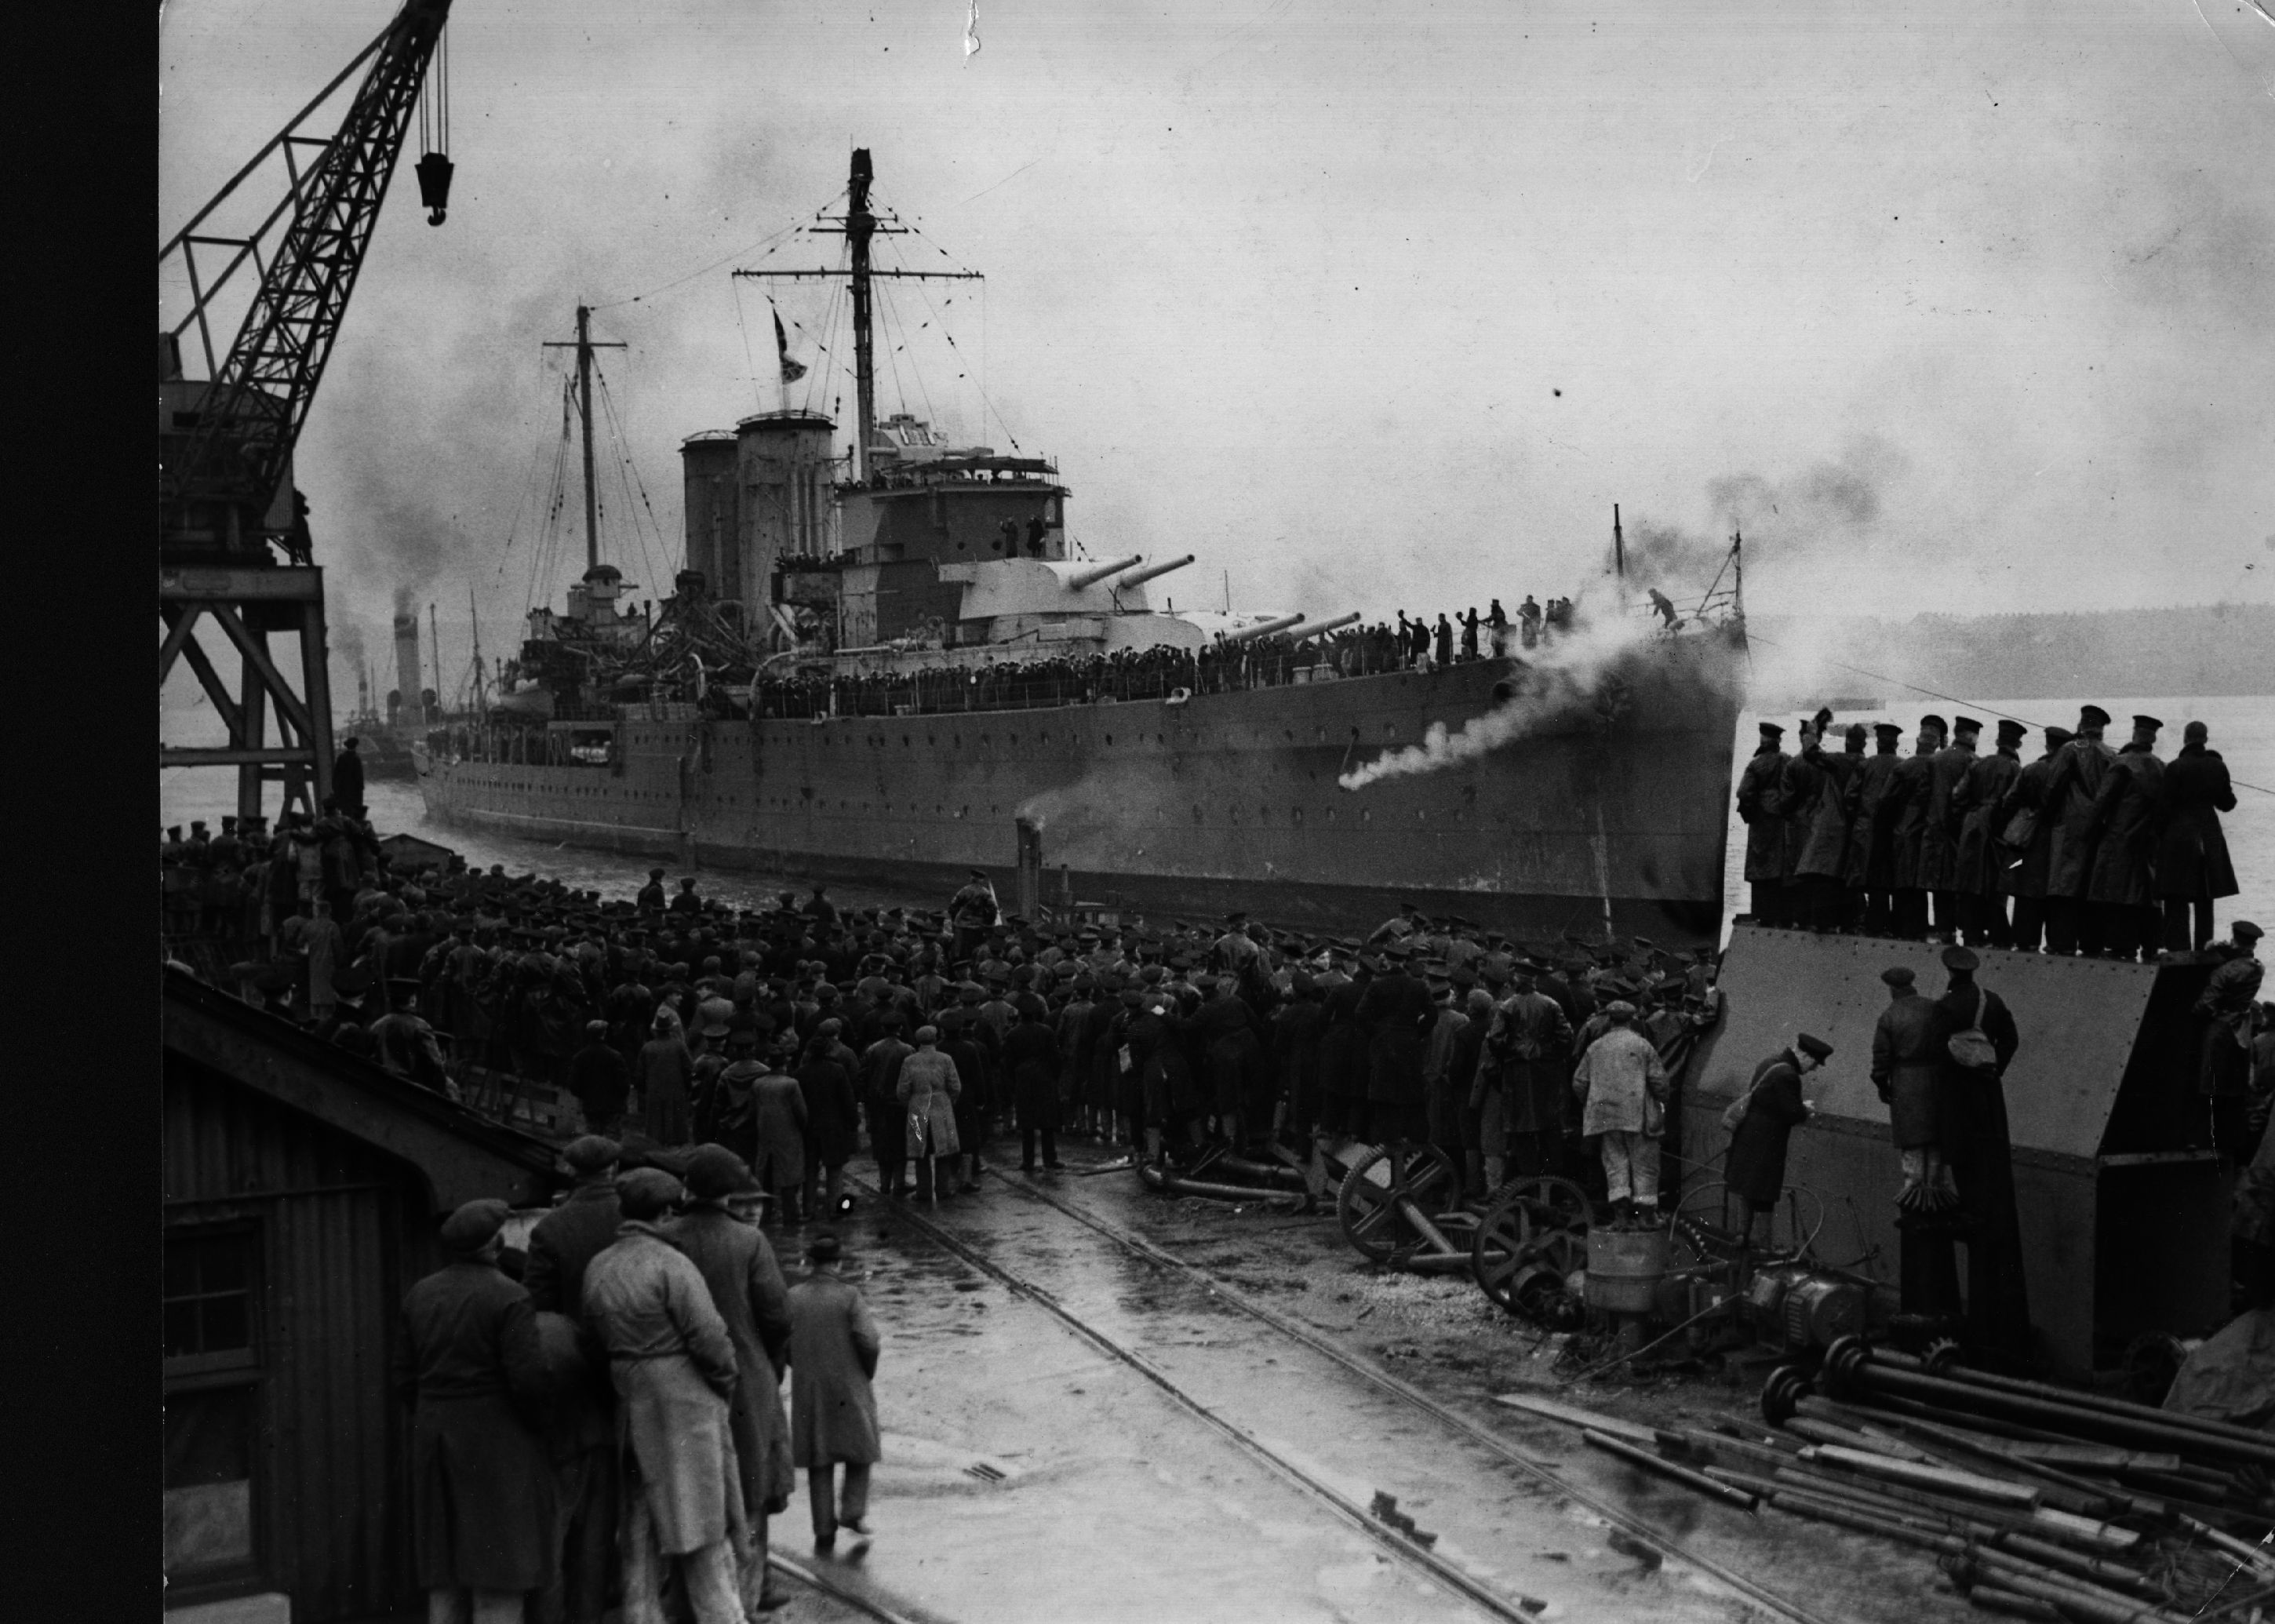 Welcome home: the cruiser 'Exeter' arrives back at Plymouth, c15 February 1940, after taking part in the battle of the River Plate. The action resulted in the scuttling of the German pocket battleship 'Admiral Graf Spee', which had sent several British merchant ships to the bottom of the Atlantic. (Photo by Hulton Archive/Getty Images)